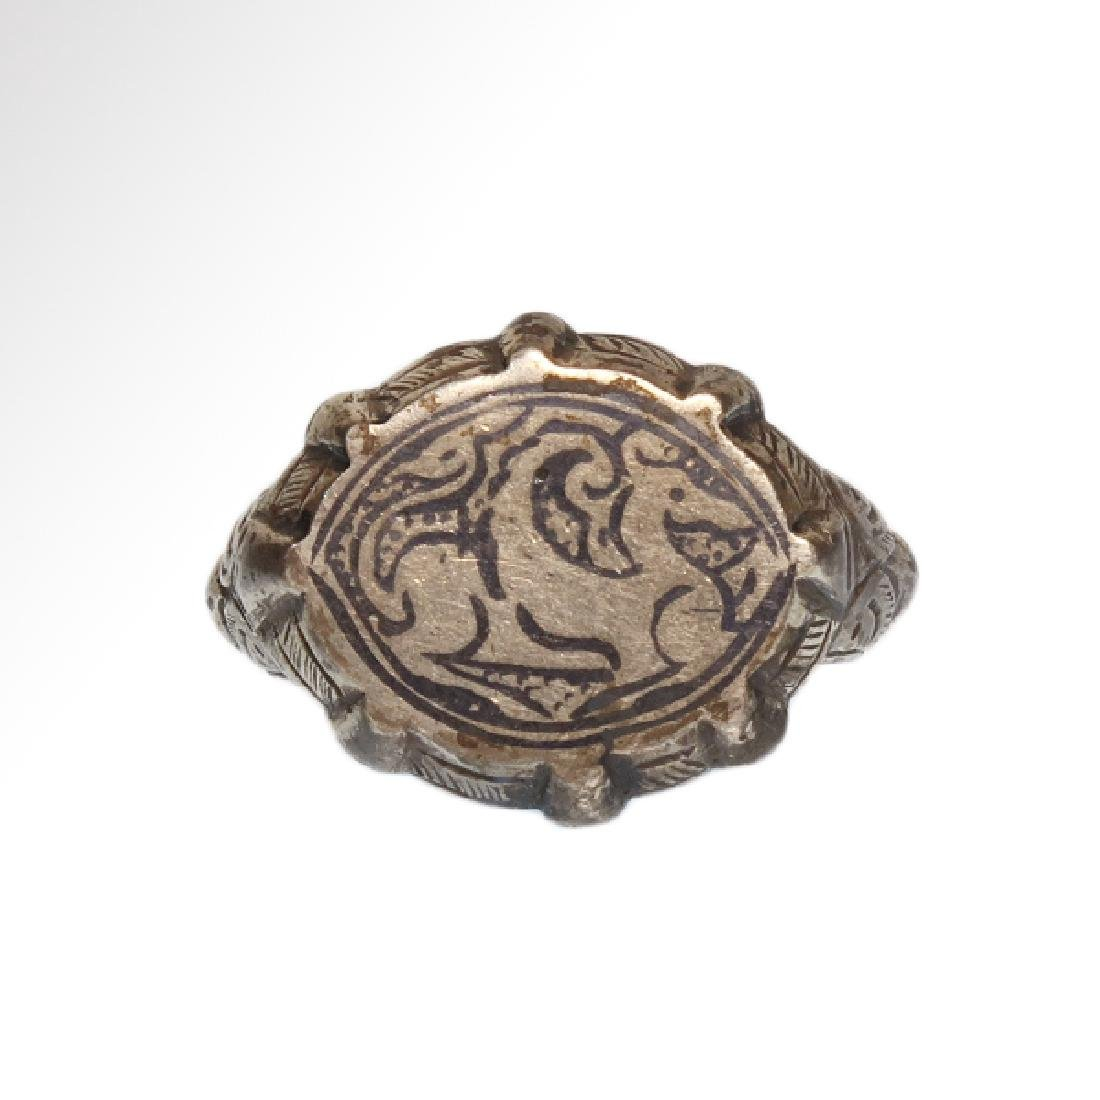 Sassanian Silver Ring with Pegasus, c. 6th Century A.D.